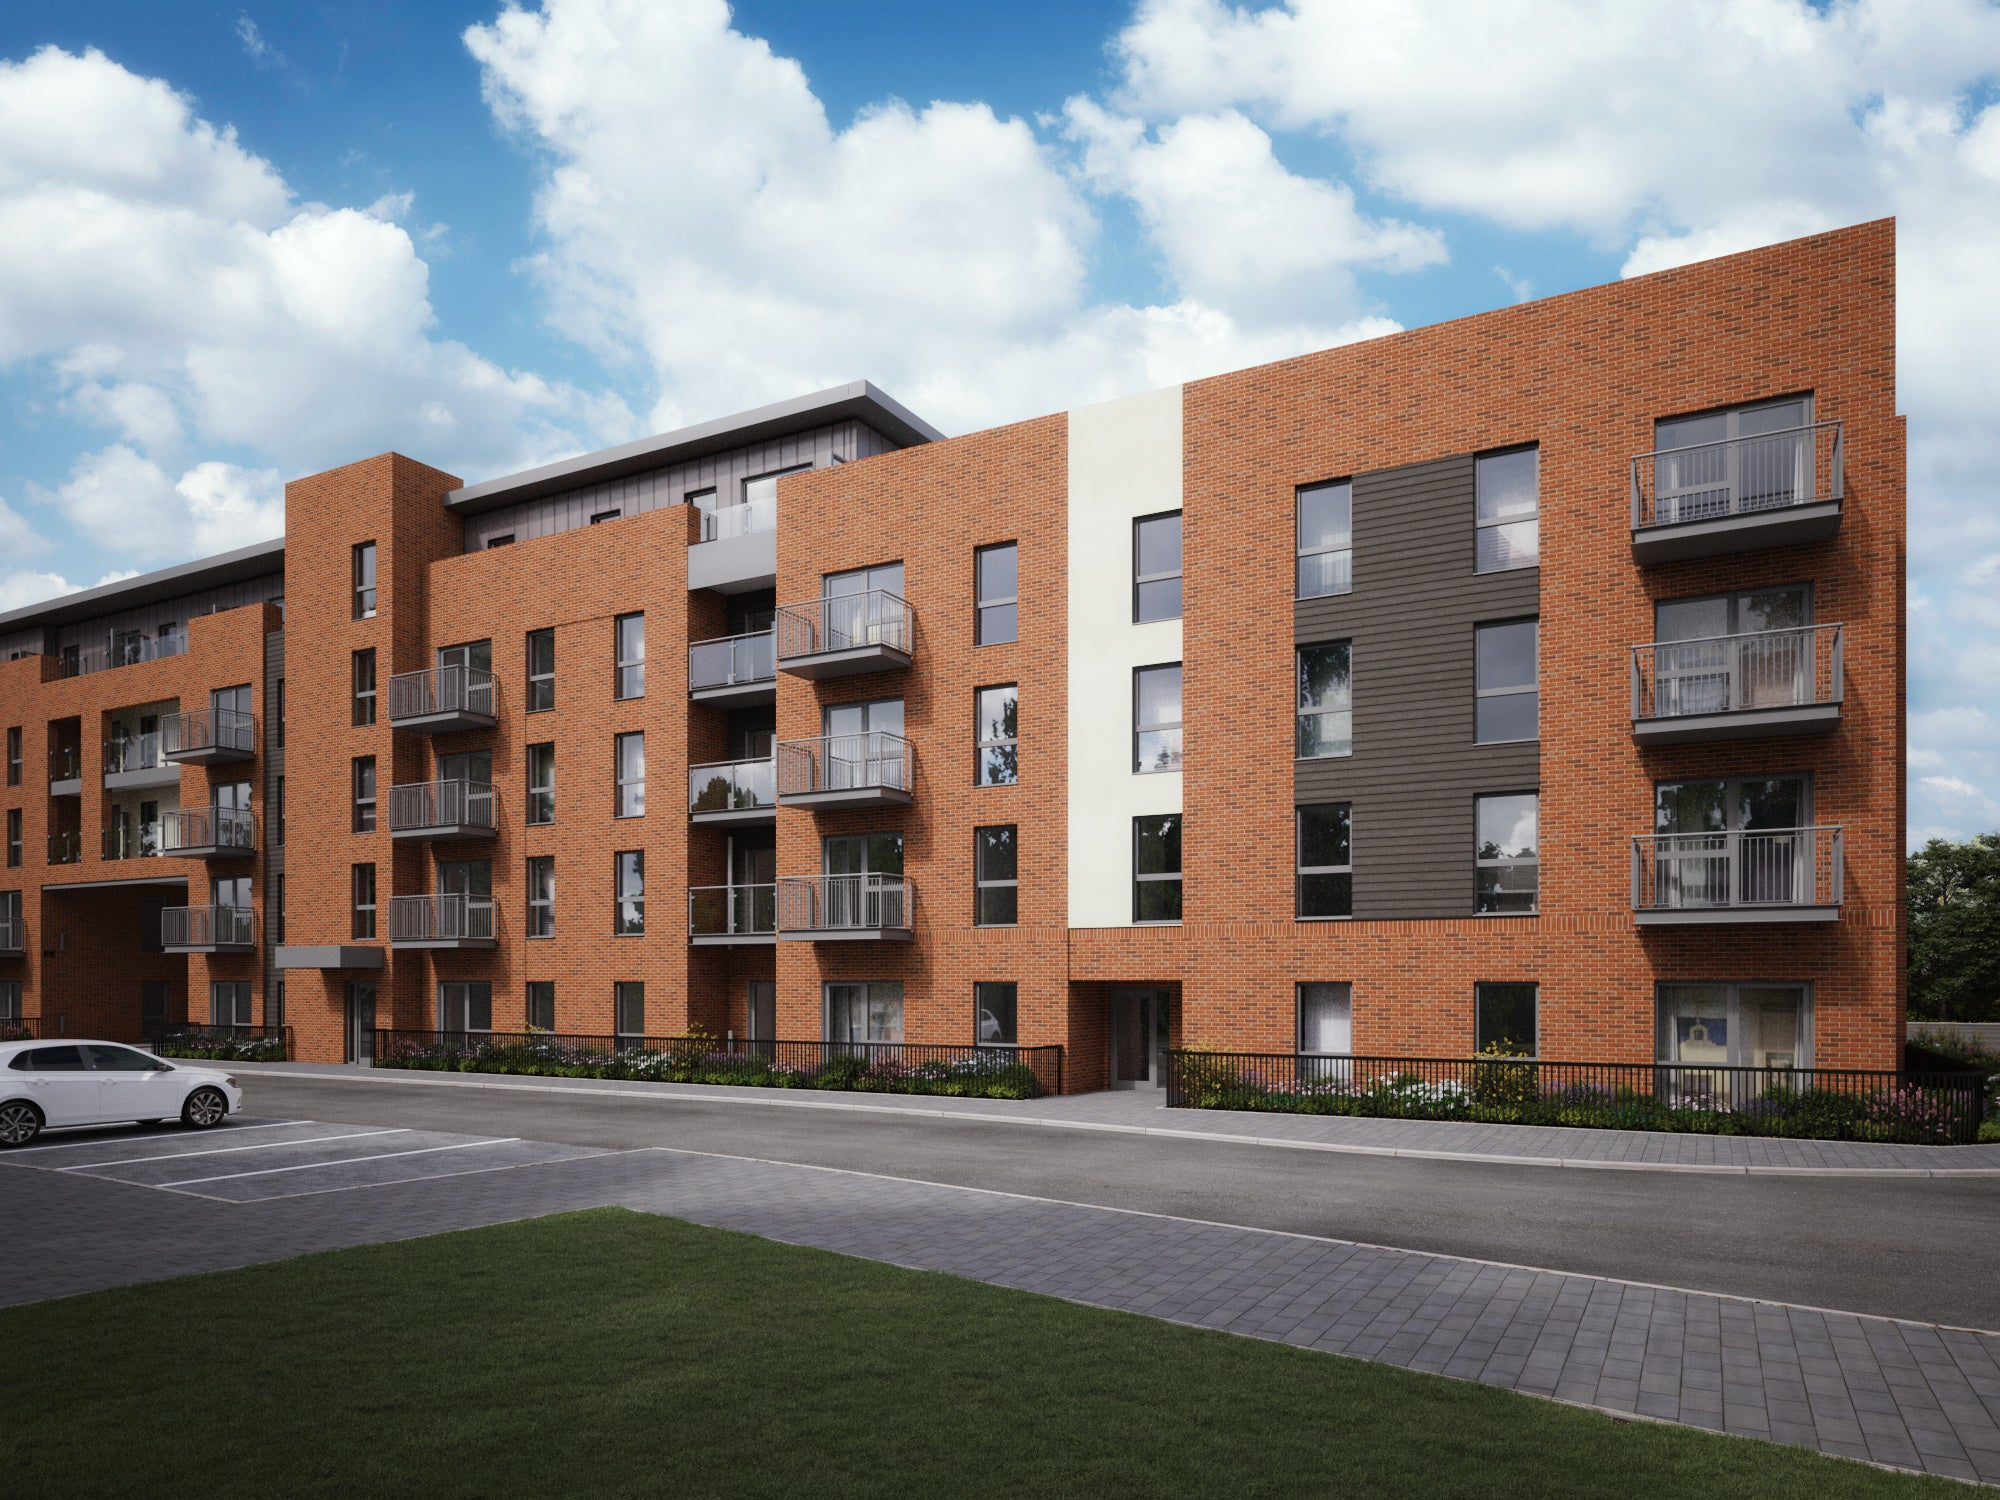 Exterior CGI of Centenary Quay Plots 5045-5057